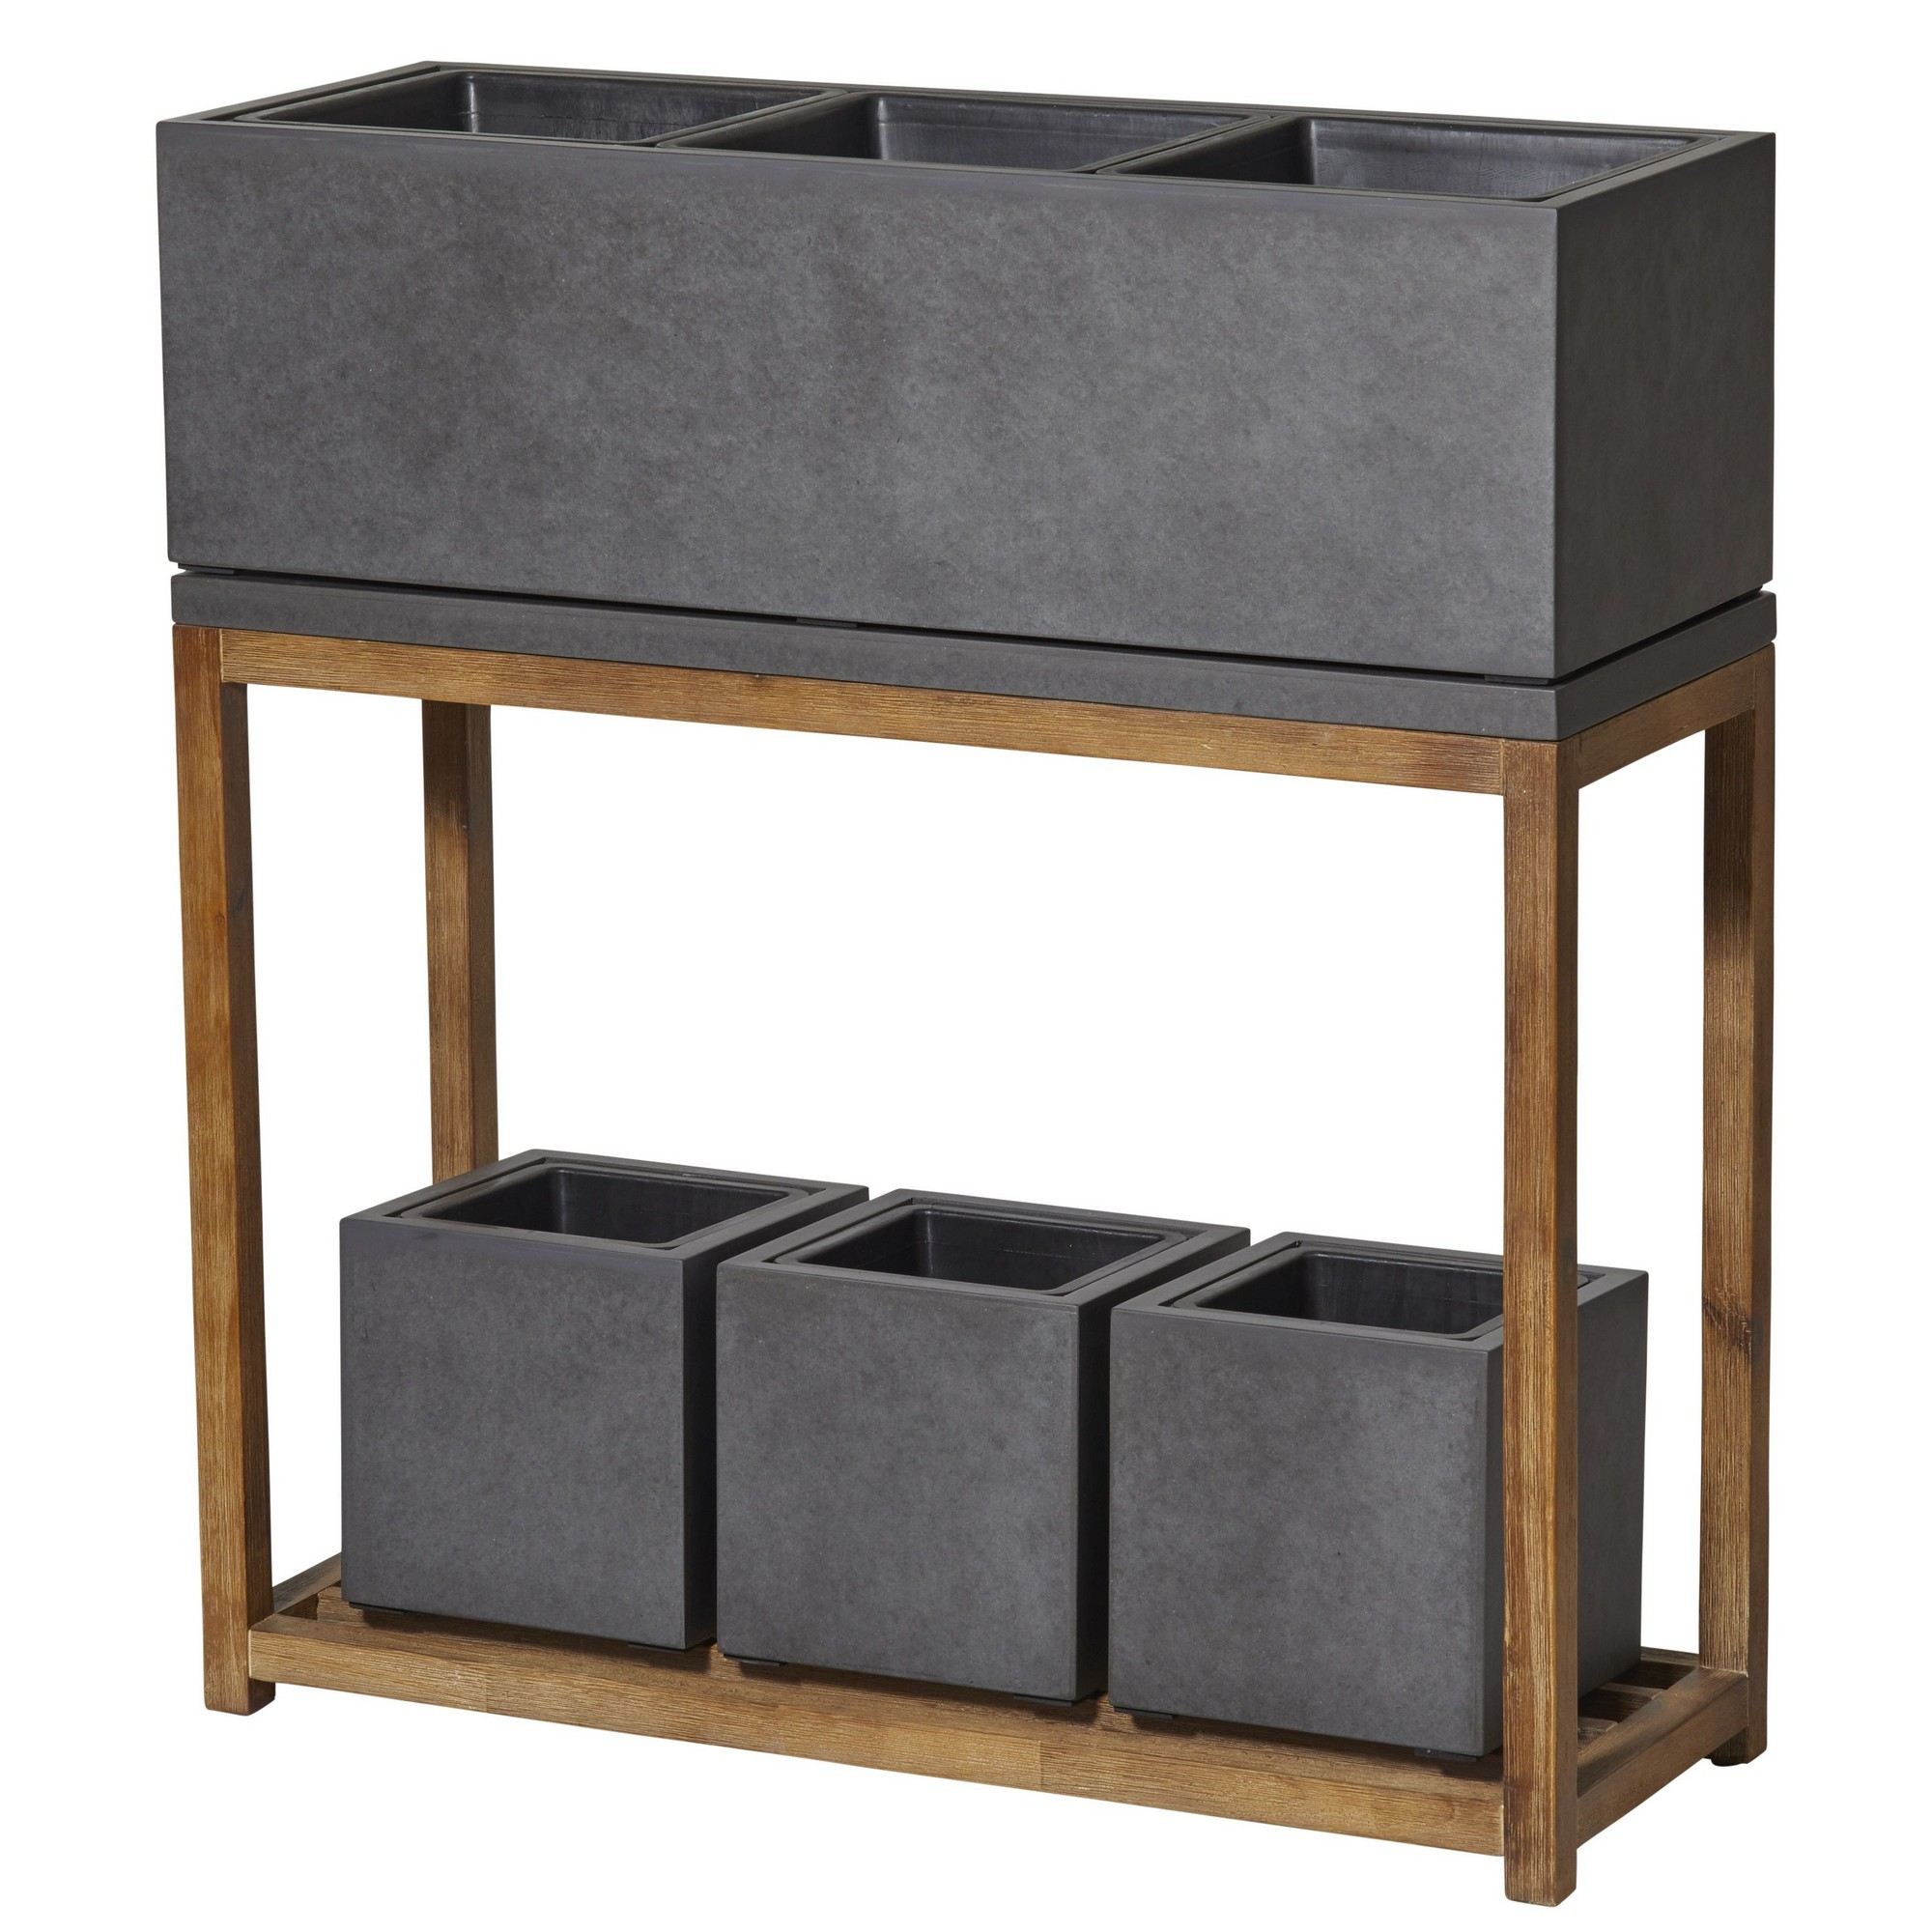 Bowie Concrete Planter Set on Timber Stand, Large